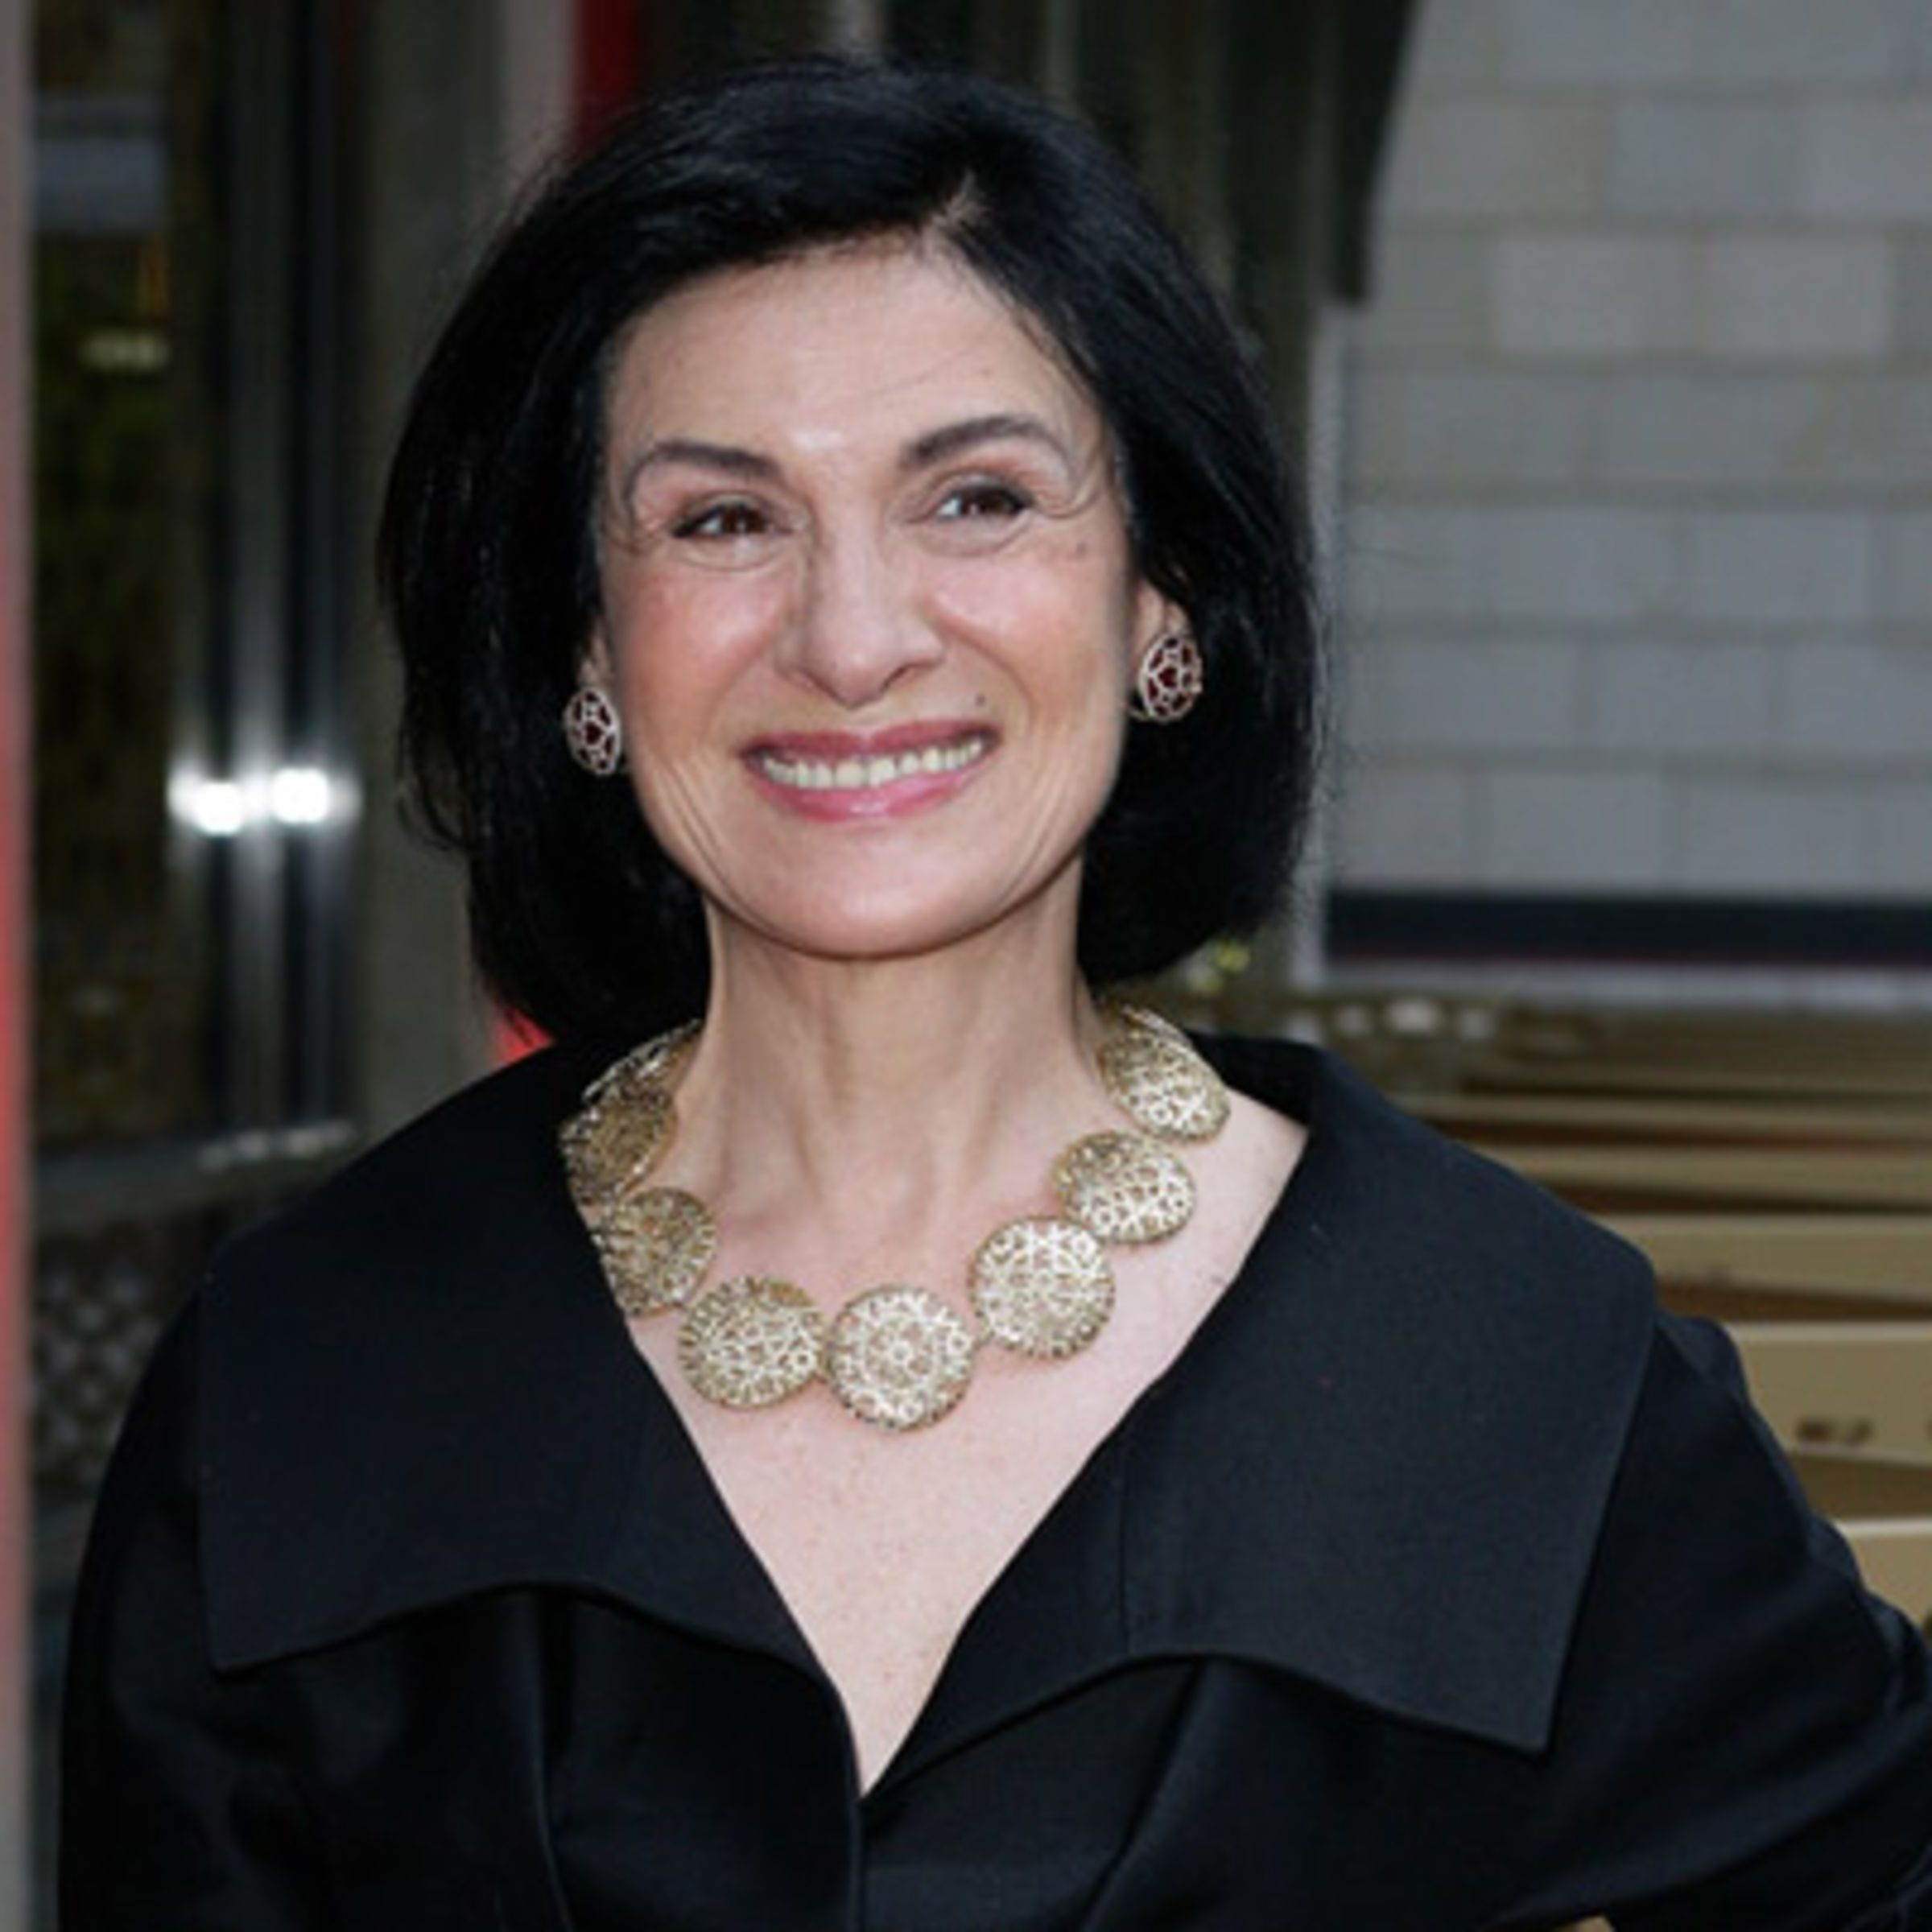 Paloma Picasso Known For Her Signature Lipstick Color Paloma Picasso Designed